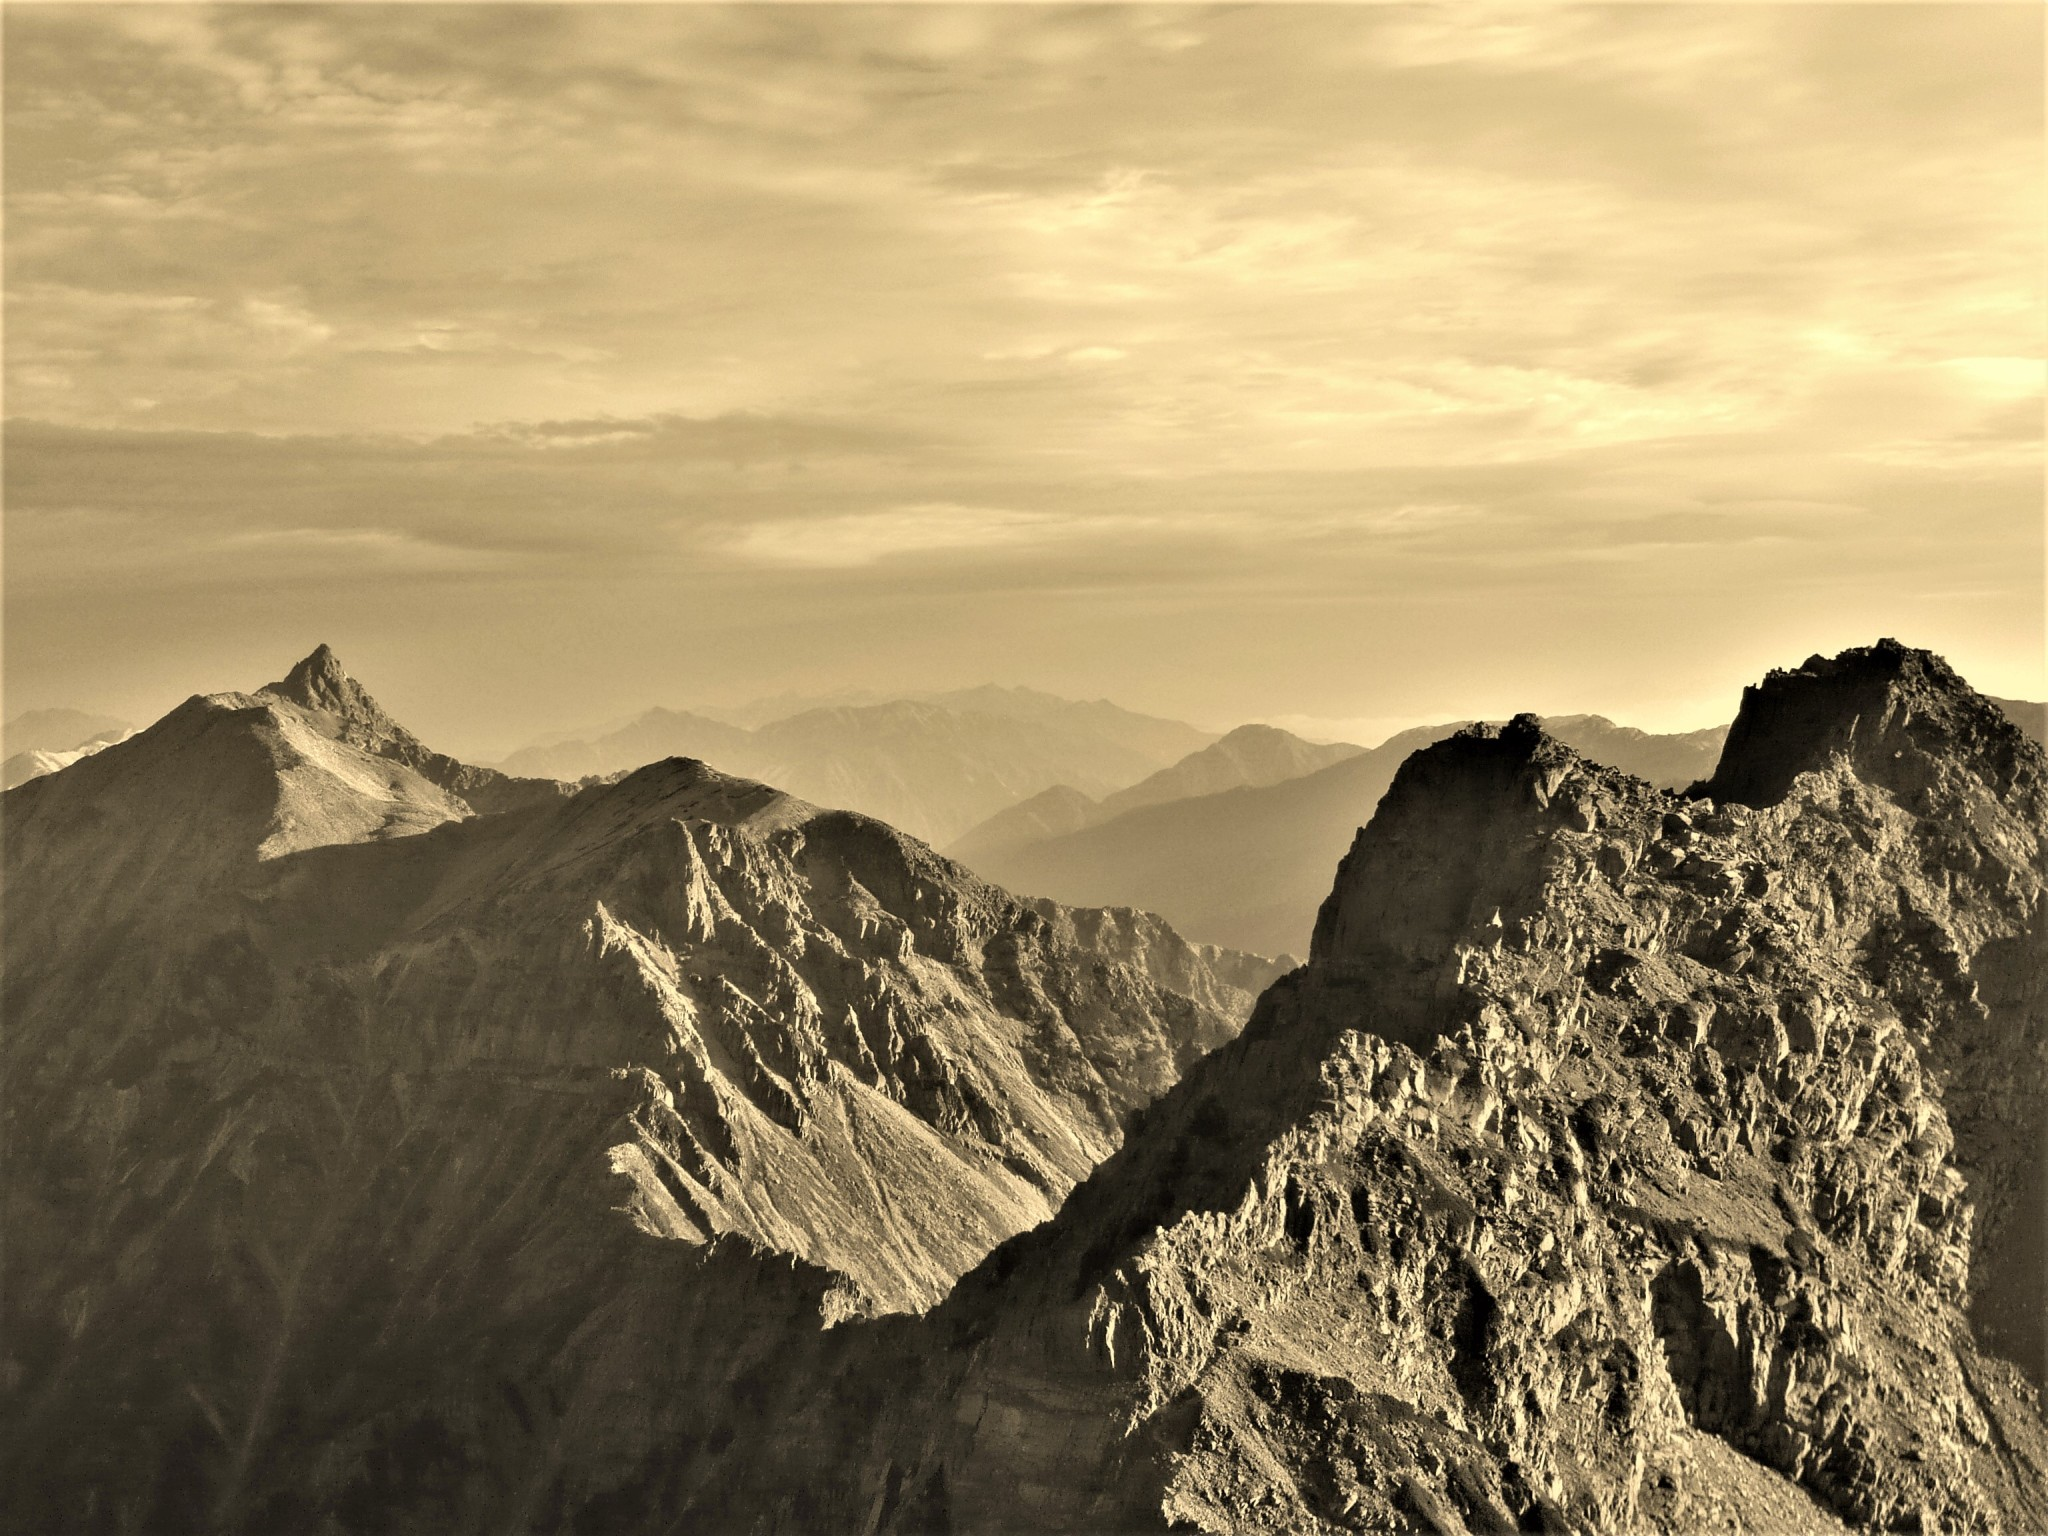 A sepia-toned panorama of Mount Yari and the Daikiretto ridgeline traverse in the Japan Alps.